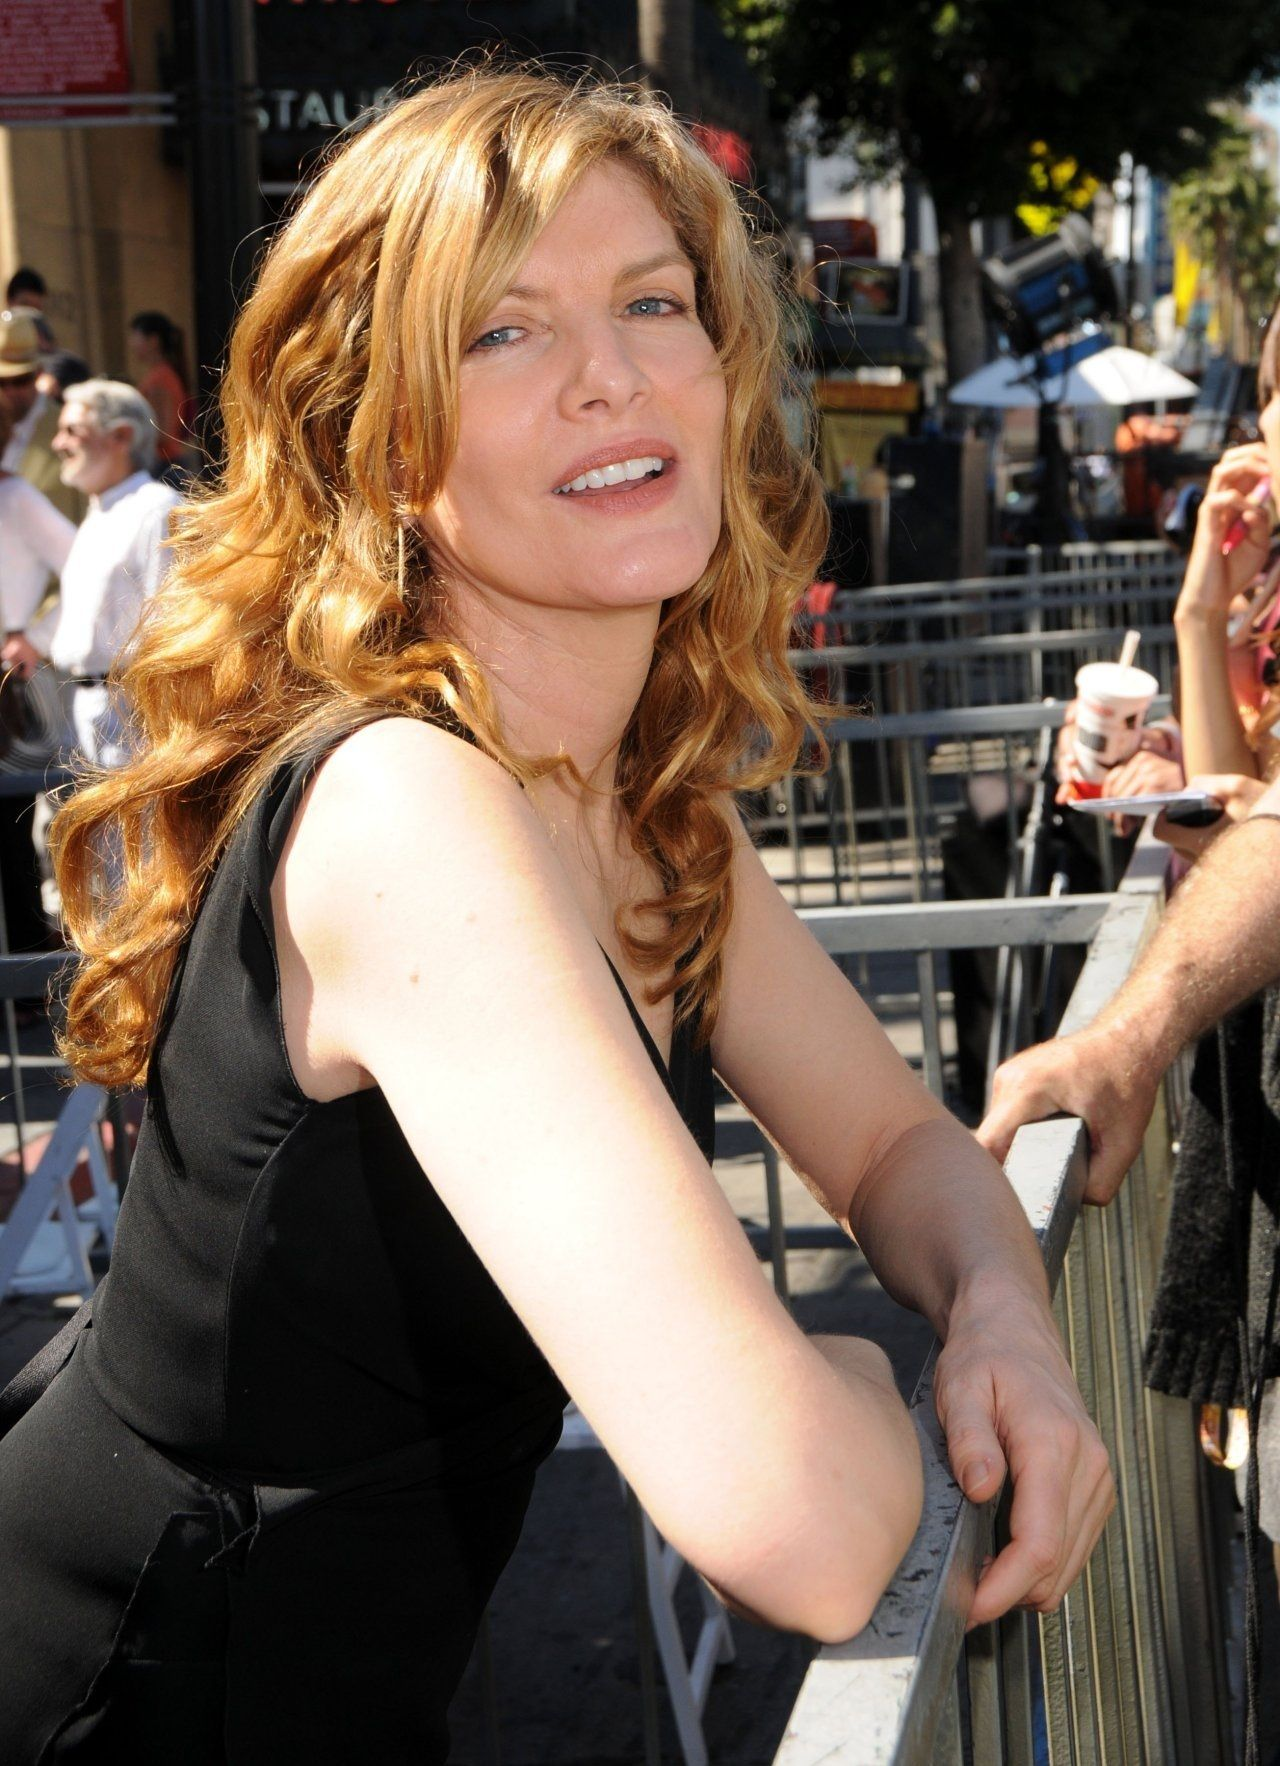 russo rene russo photo page